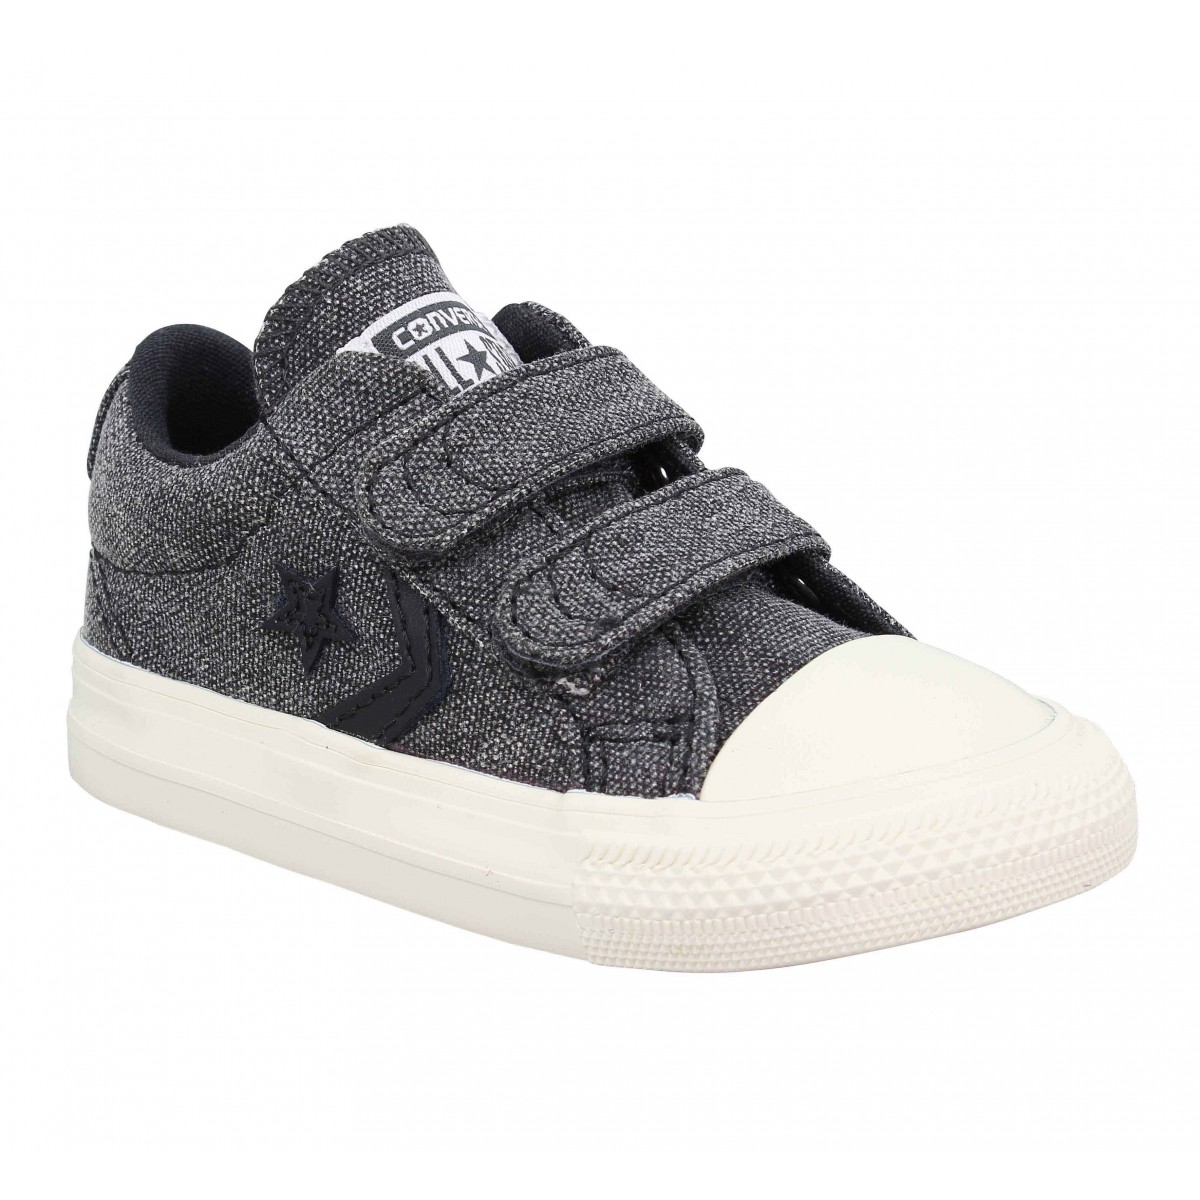 Baskets CONVERSE Star Player 2V toile Enfant Black